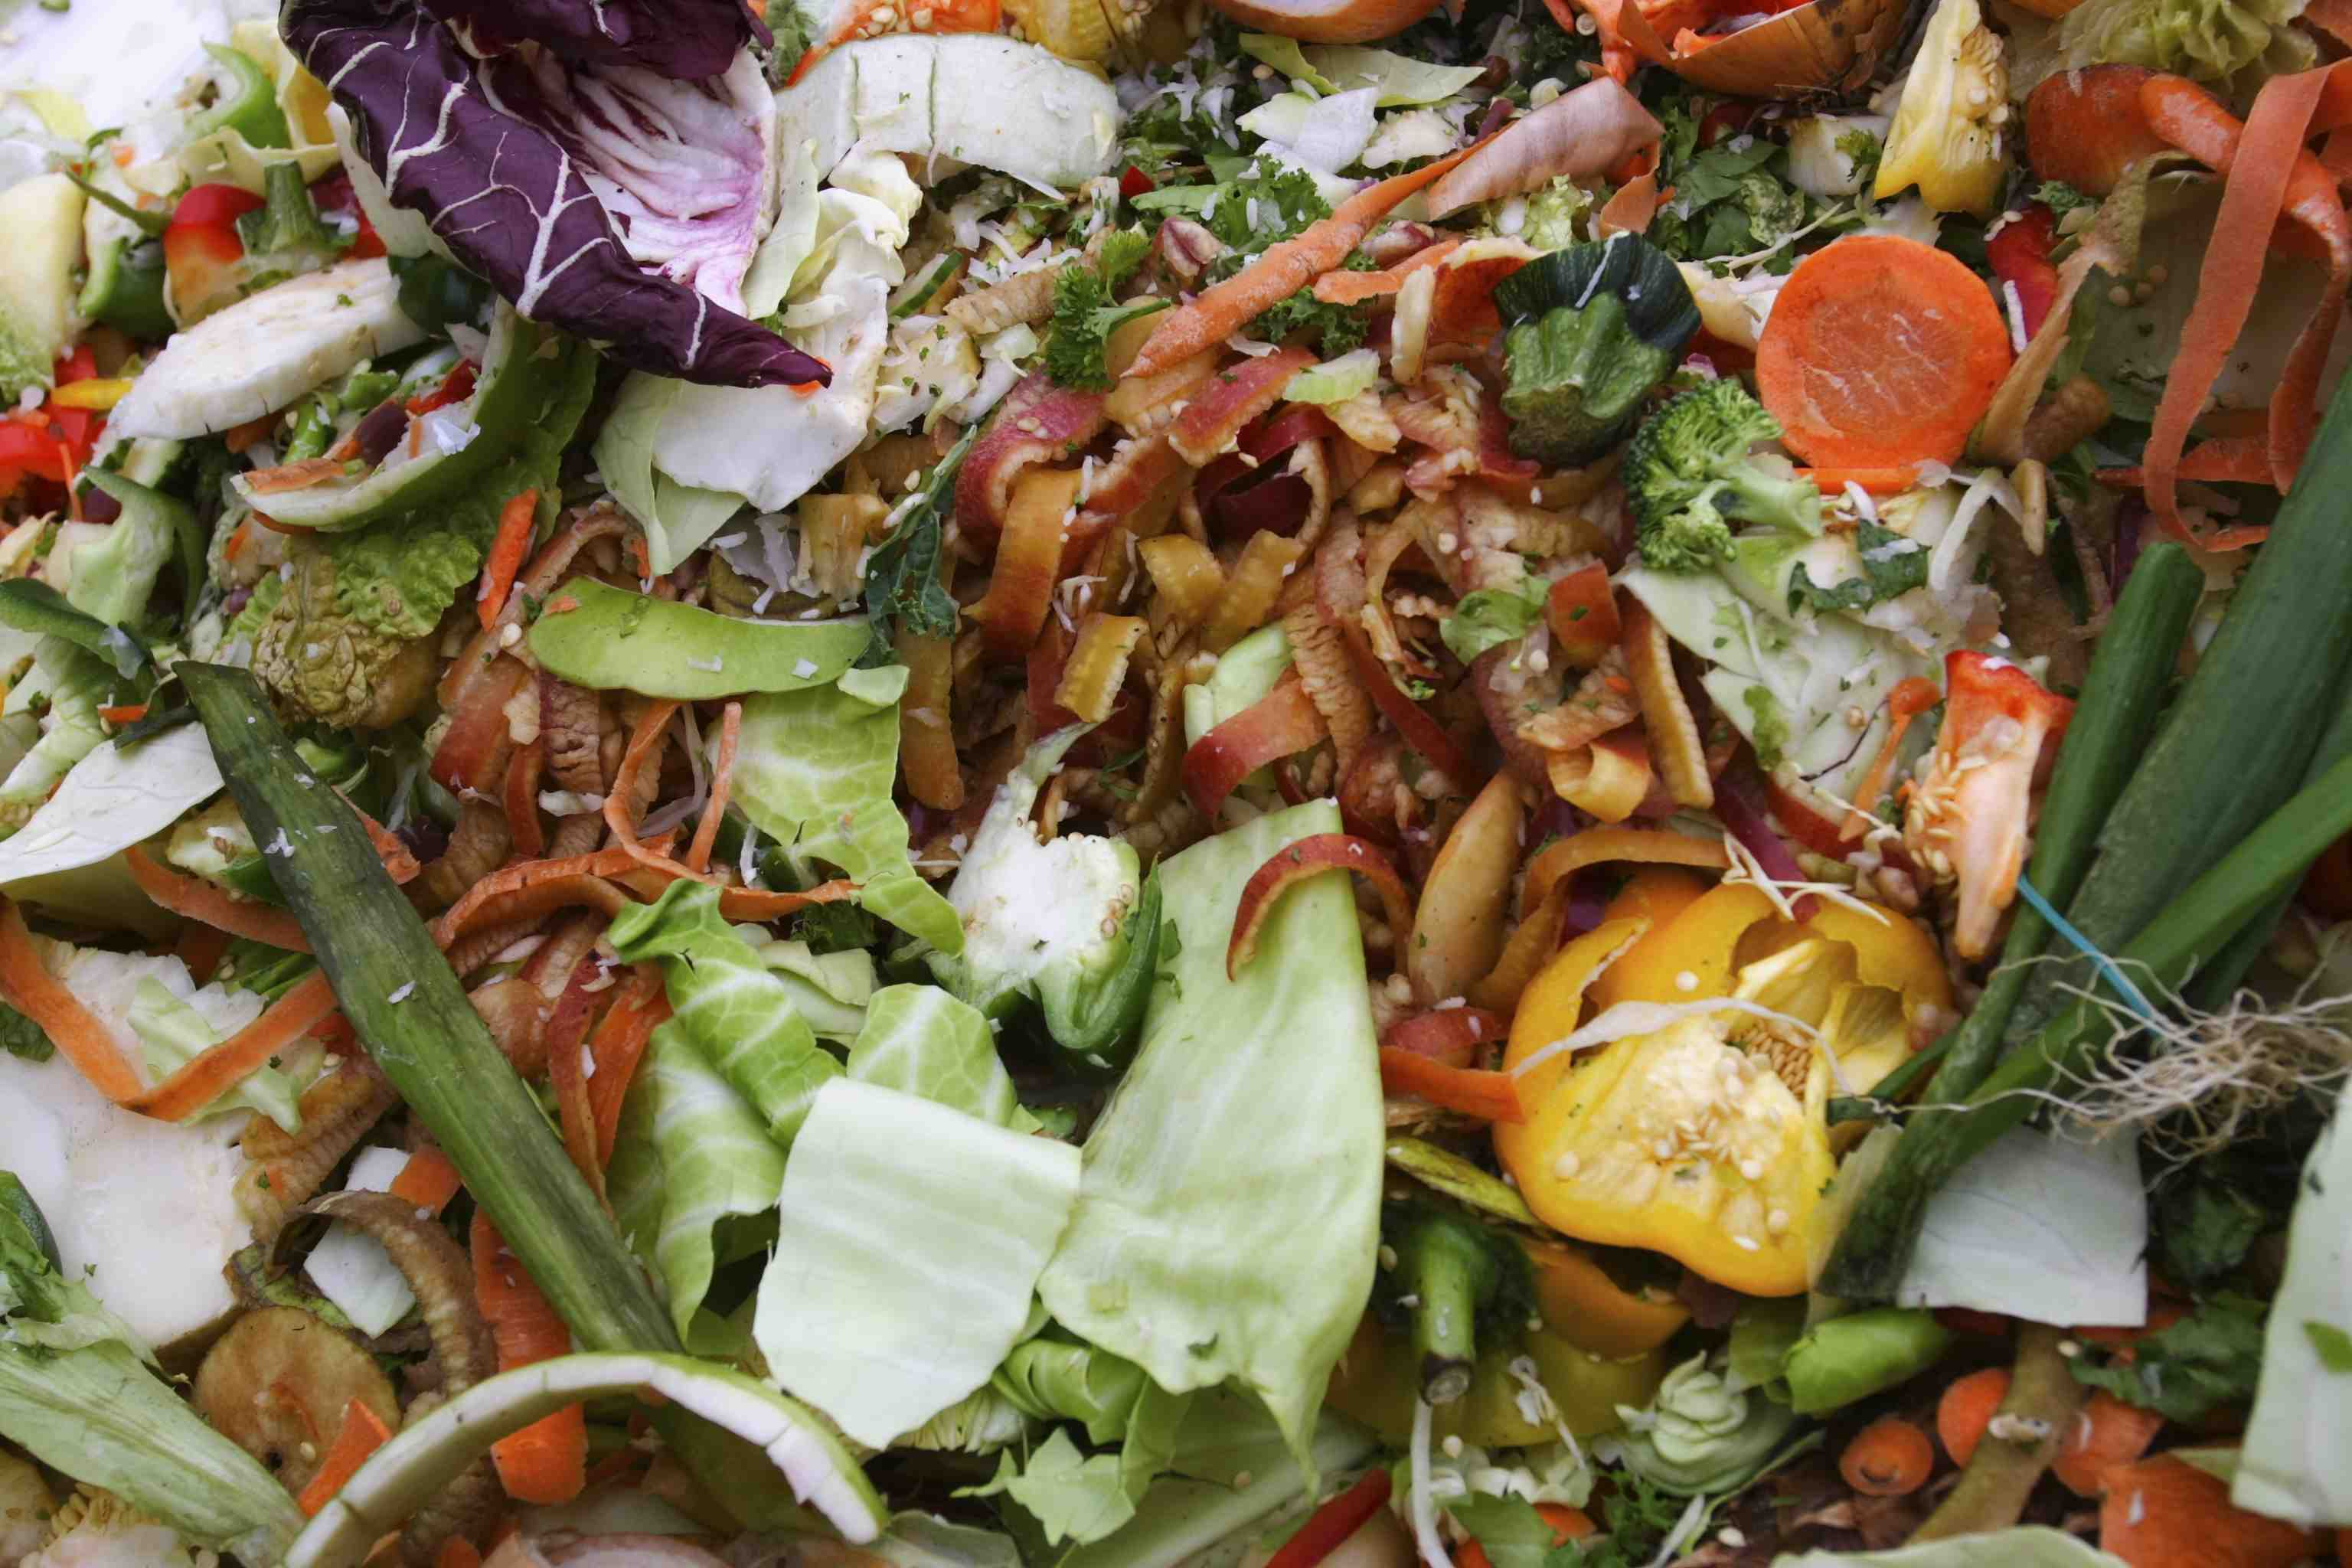 Major Irish Retailers Sign Up to Government's Food Waste Charter